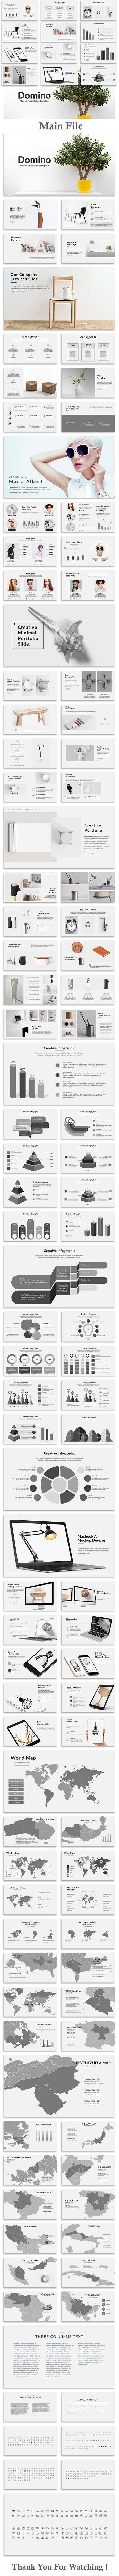 Domino - Minimal Powerpoint Template - Creative PowerPoint Templates Download here: https://graphicriver.net/item/domino-minimal-powerpoint-template/19990786?ref=classicdesignp